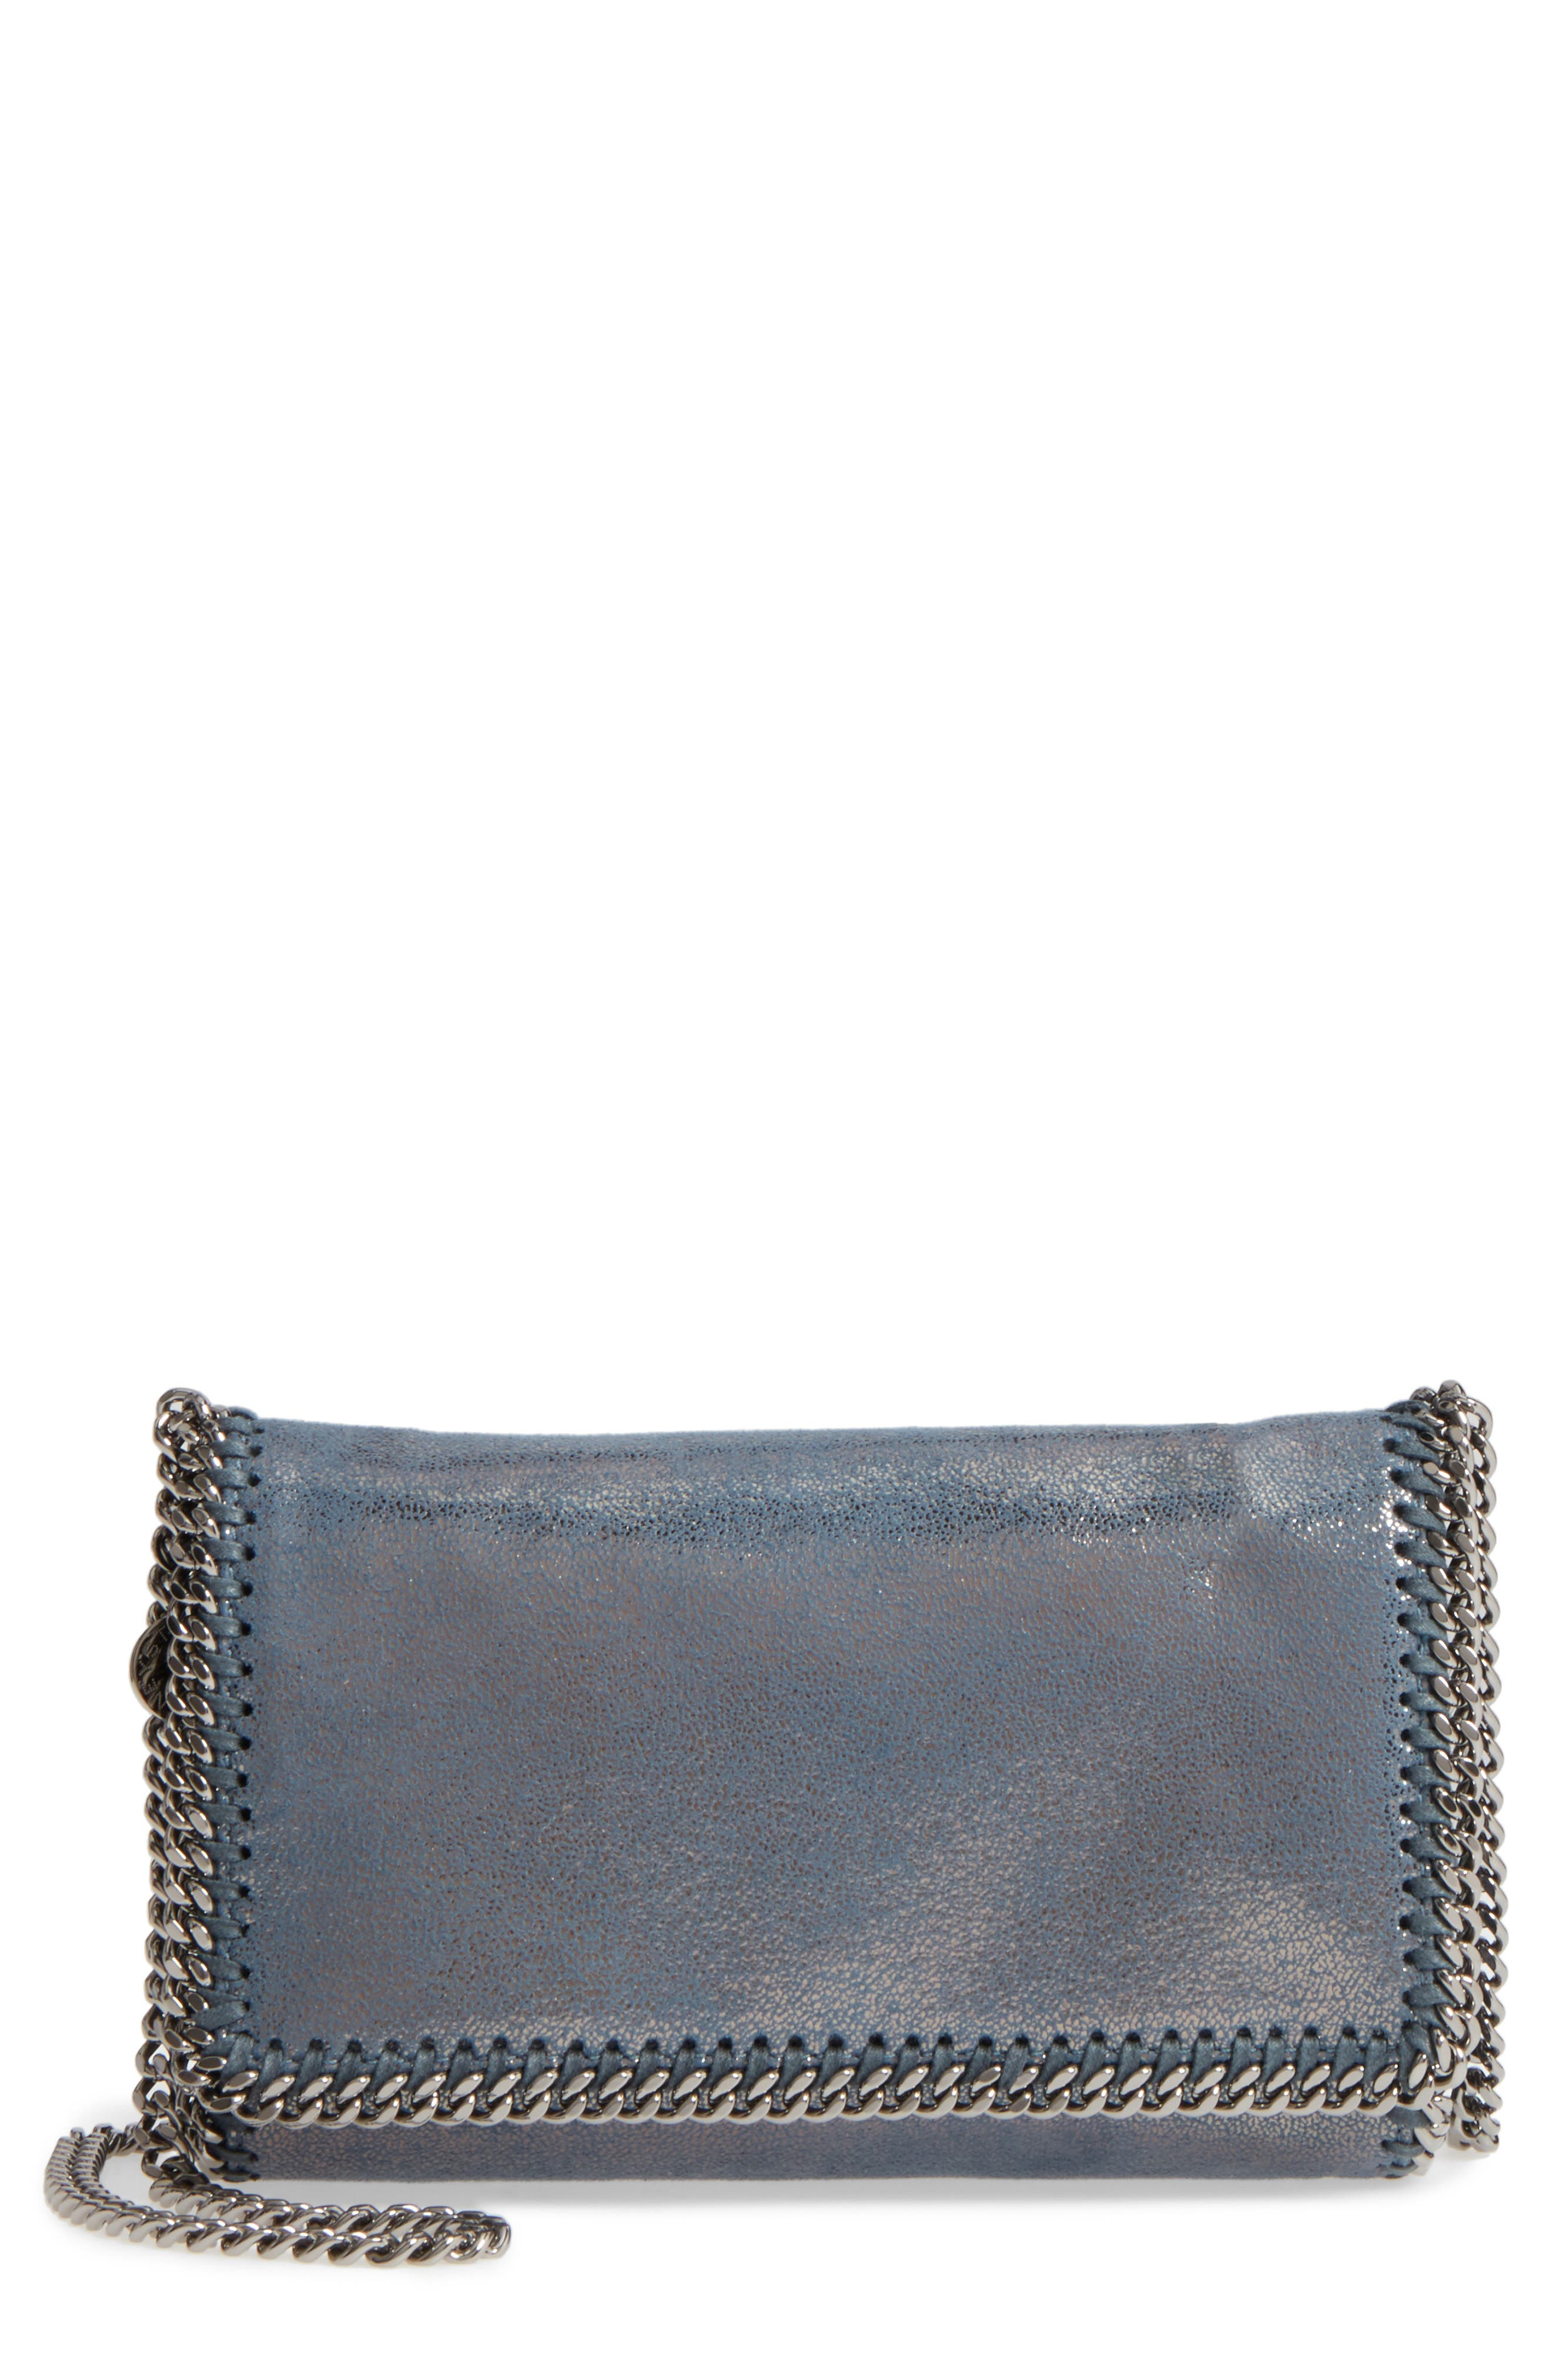 Alternate Image 1 Selected - Stella McCartney Falabella Shaggy Deer Faux Leather Clutch